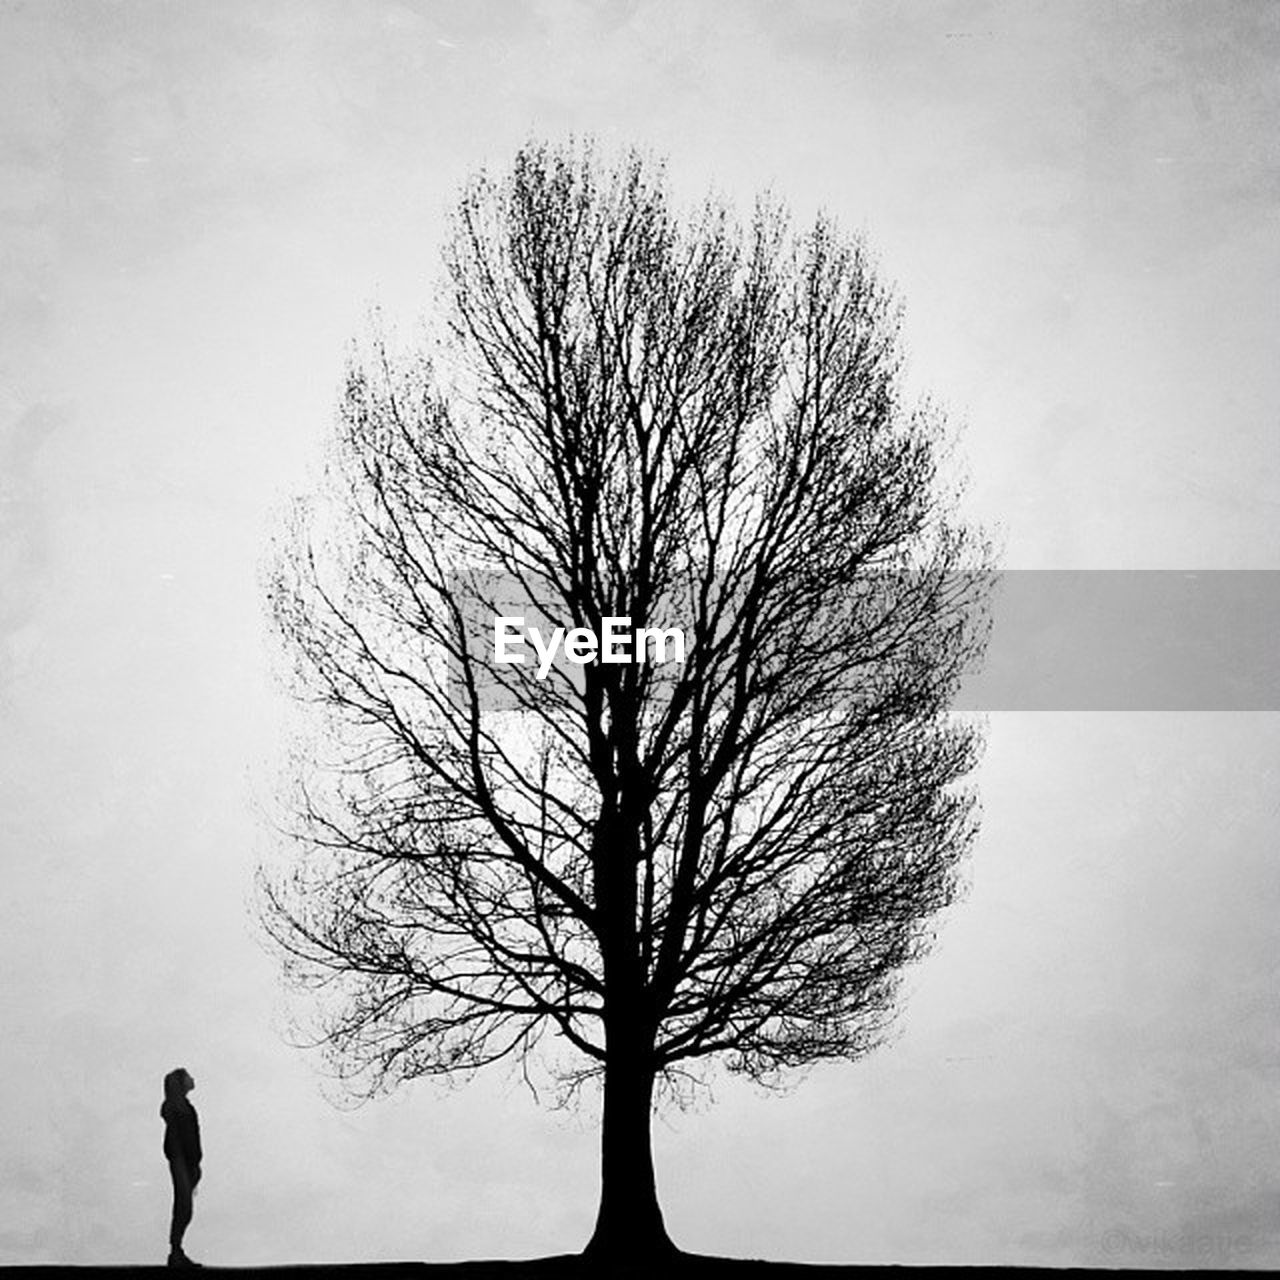 bare tree, tree, tree trunk, lone, branch, isolated, solitude, tranquility, silhouette, beauty in nature, tranquil scene, nature, landscape, outdoors, sky, day, clear sky, one person, people